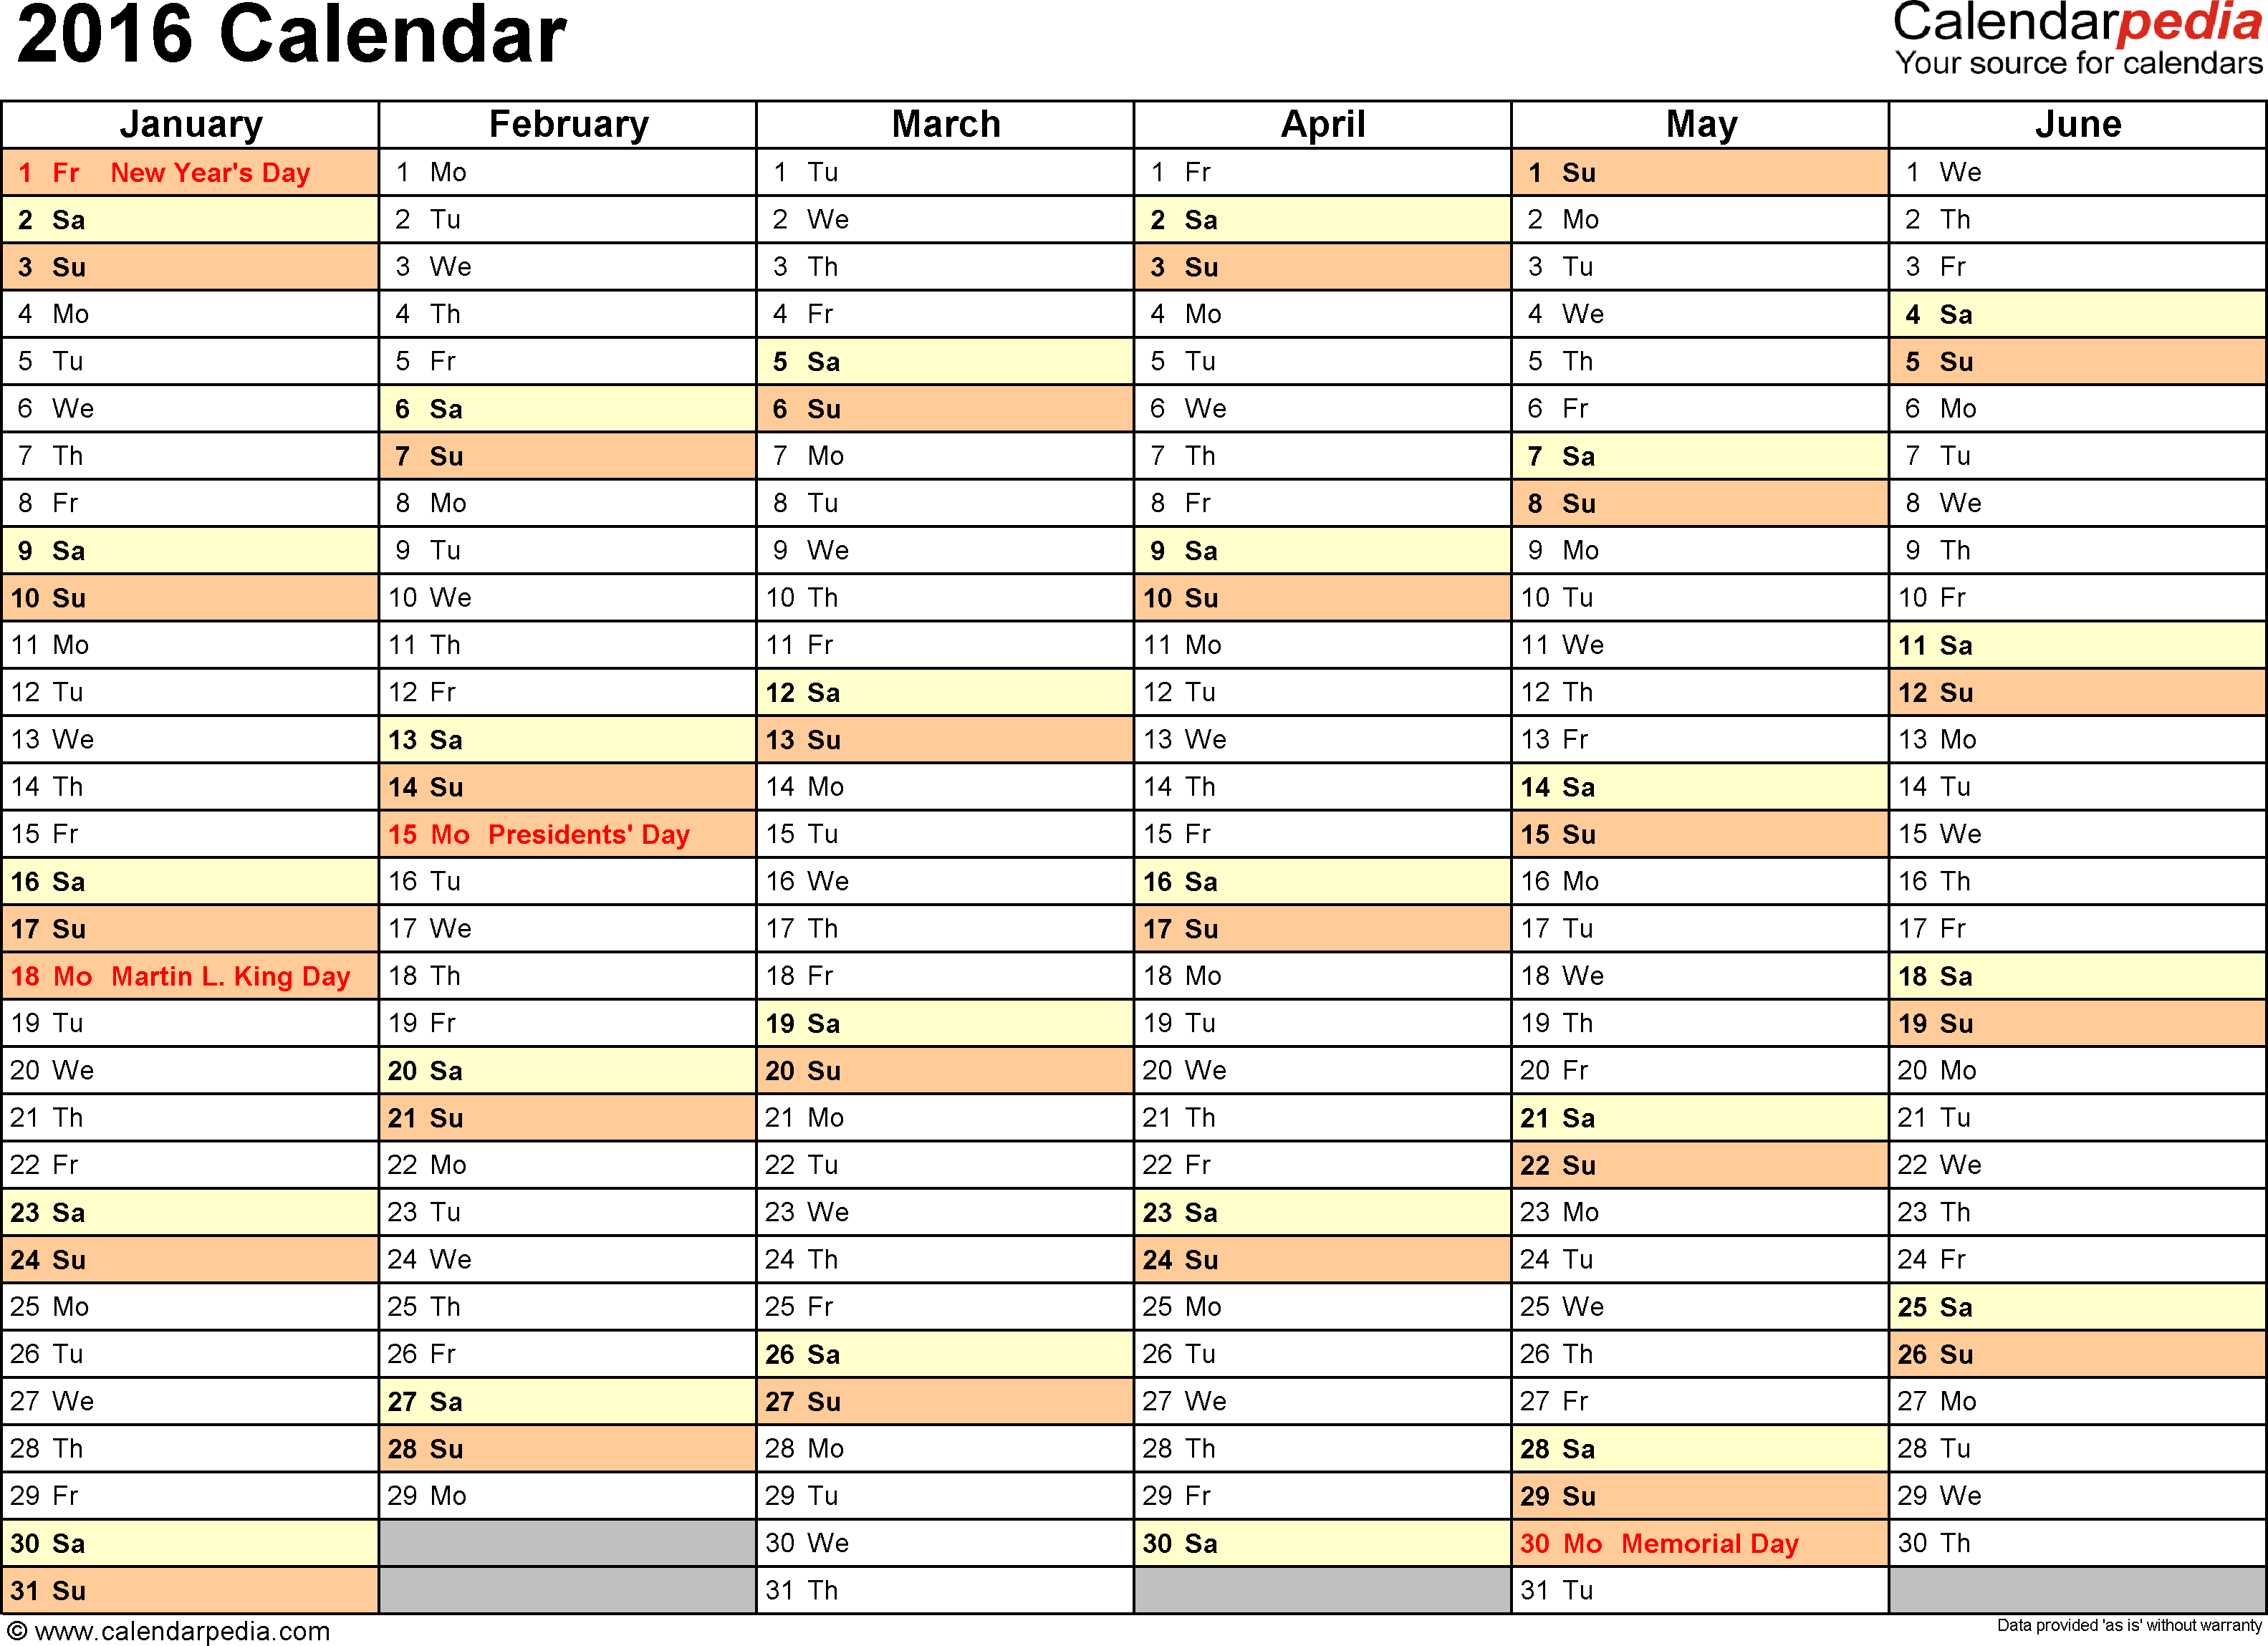 Ediblewildsus  Splendid  Calendar  Download  Free Printable Excel Templates Xls With Great Template   Calendar For Excel Months Horizontally  Pages Landscape Orientation With Divine Excel Center Across Selection Also How To Consolidate Data In Excel In Addition How To Merge Cells In Excel  And Excel Message Box As Well As R Squared In Excel Additionally Excel Covariance From Calendarpediacom With Ediblewildsus  Great  Calendar  Download  Free Printable Excel Templates Xls With Divine Template   Calendar For Excel Months Horizontally  Pages Landscape Orientation And Splendid Excel Center Across Selection Also How To Consolidate Data In Excel In Addition How To Merge Cells In Excel  From Calendarpediacom